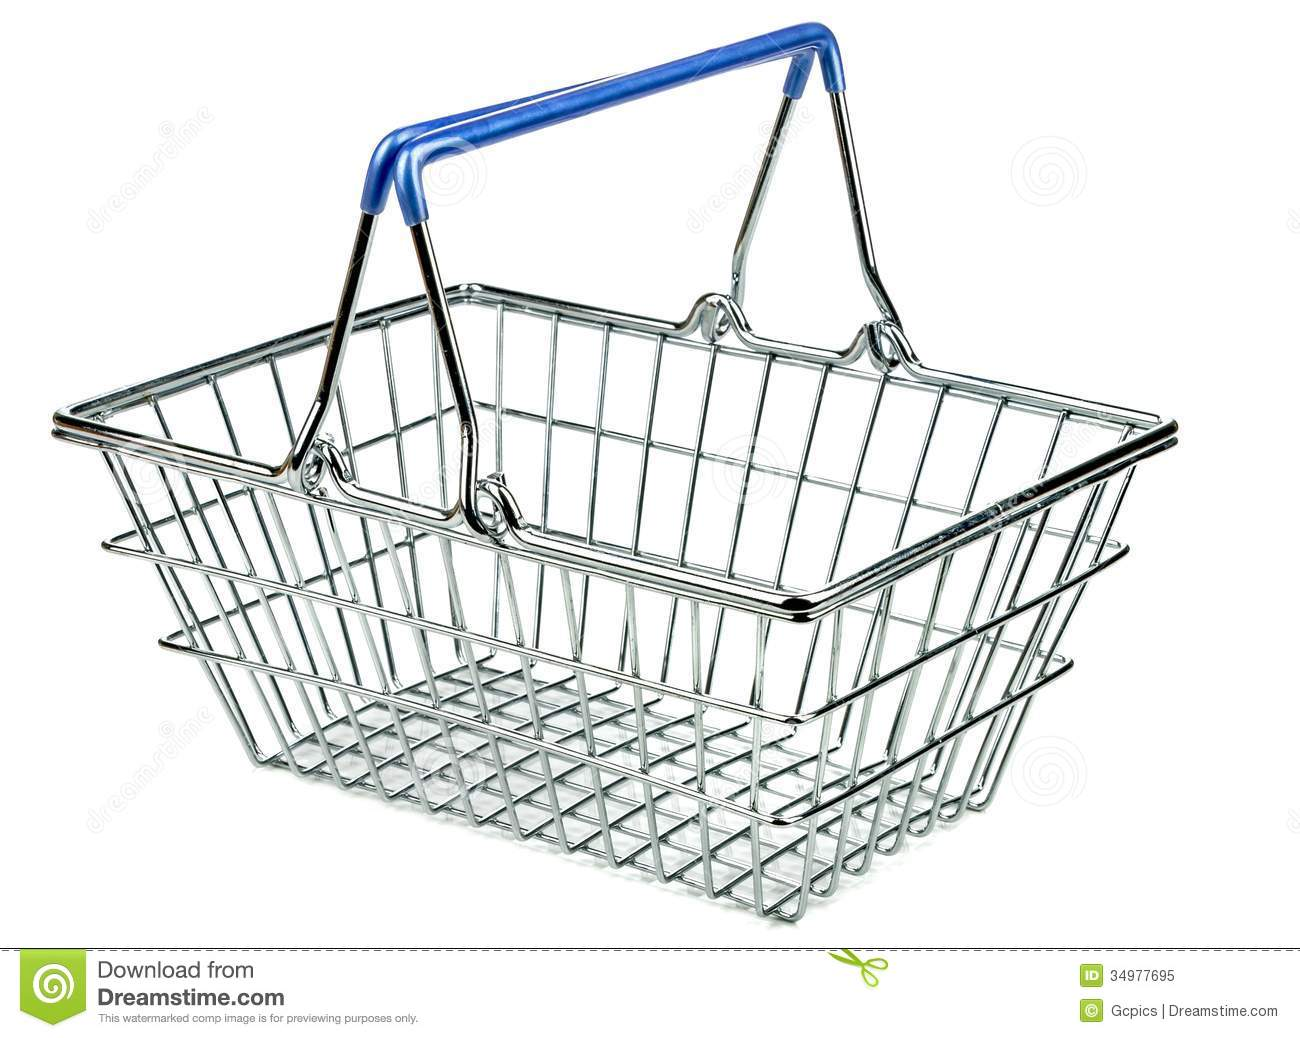 Free clipart shopping basket : Ping basket clipart suggest